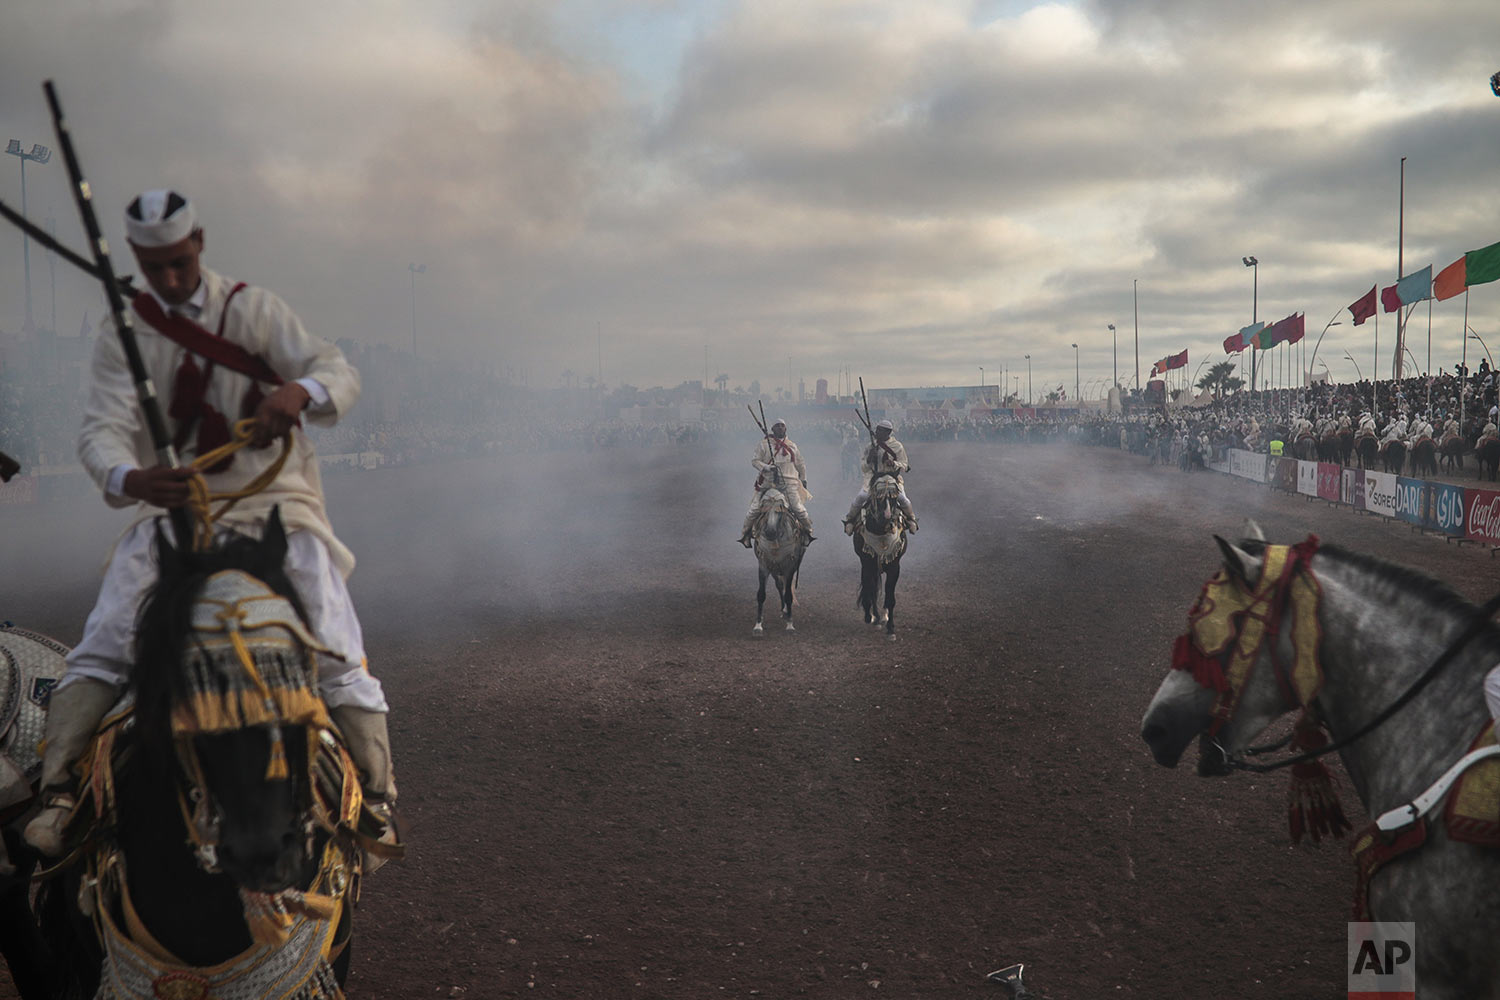 A troupe is engulfed by smoke after firing their rifles during Tabourida, a traditional horse riding show also known as Fantasia, in the coastal town of El Jadida, Morocco, July 25, 2019. (AP Photo/Mosa'ab Elshamy)